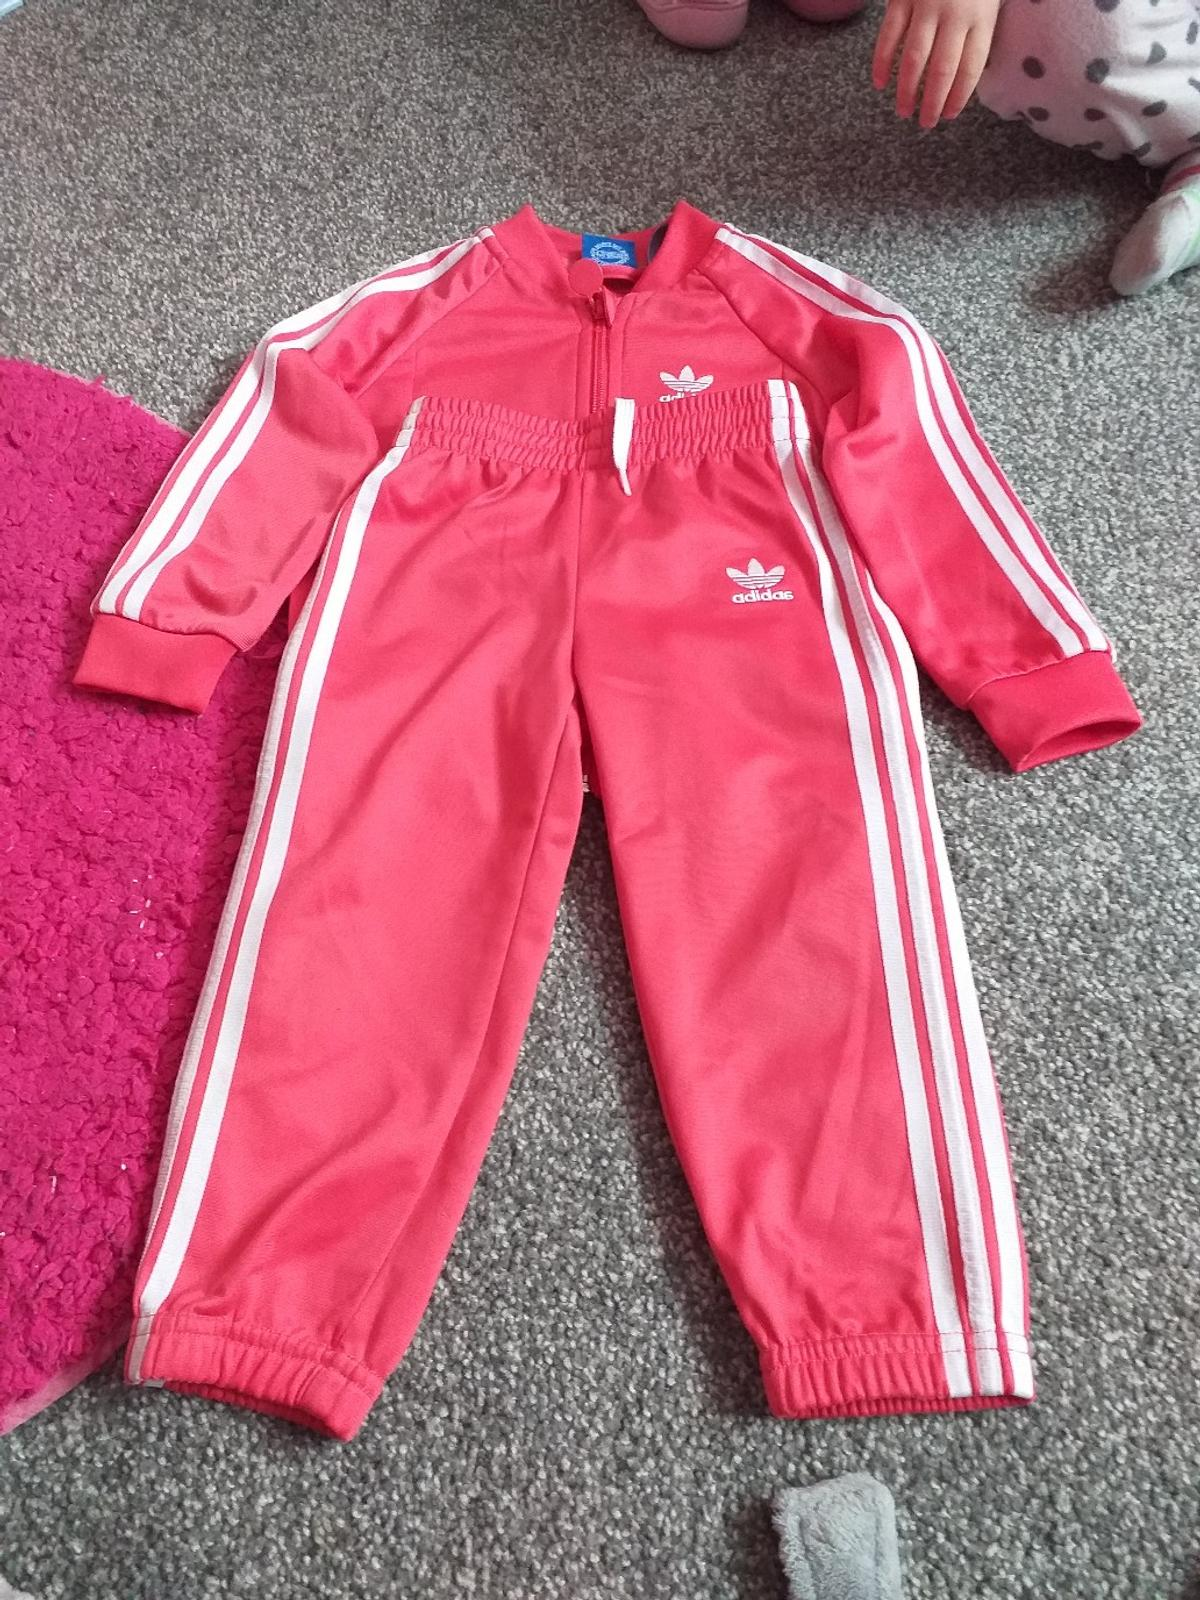 296f15d648c2 Girls Adidas Full Tracksuits in DY4 Sandwell for £40.00 for sale ...